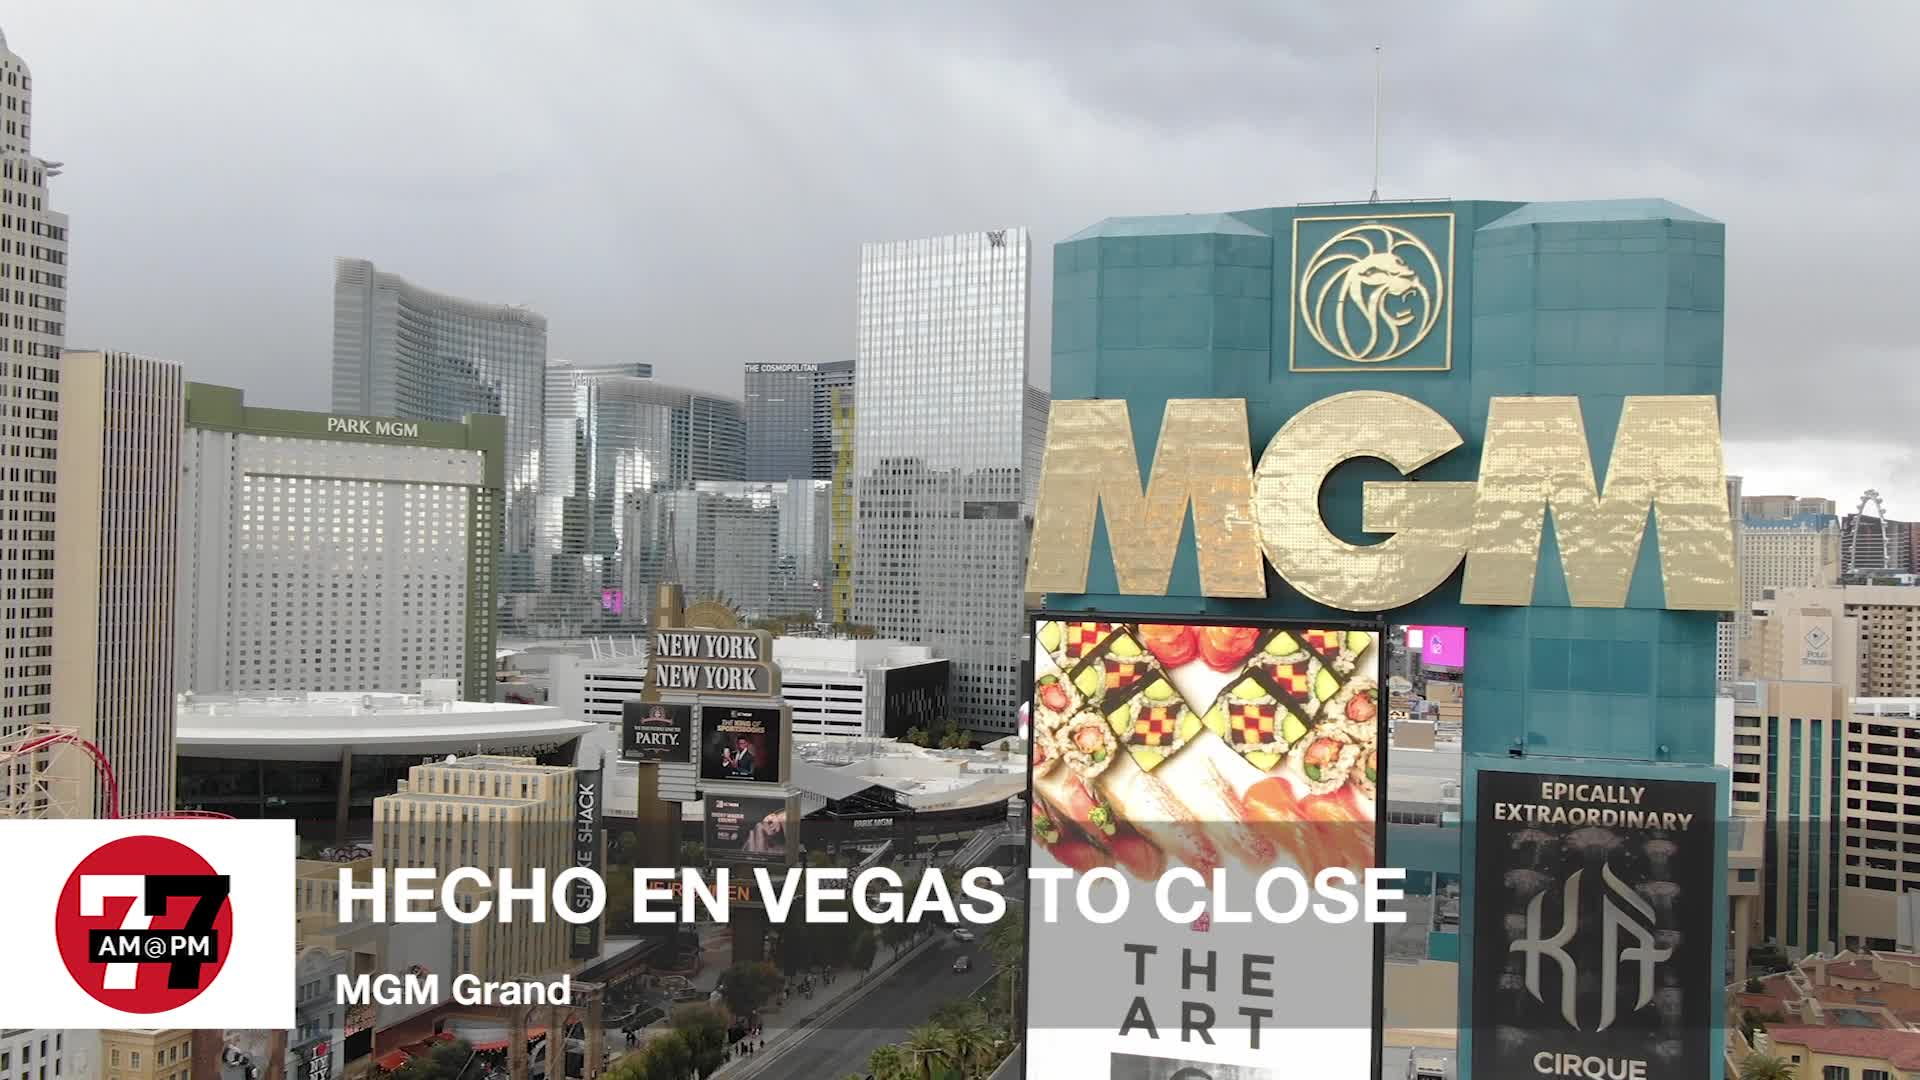 7@7PM Hecho en Vegas at MGM Grand to Close